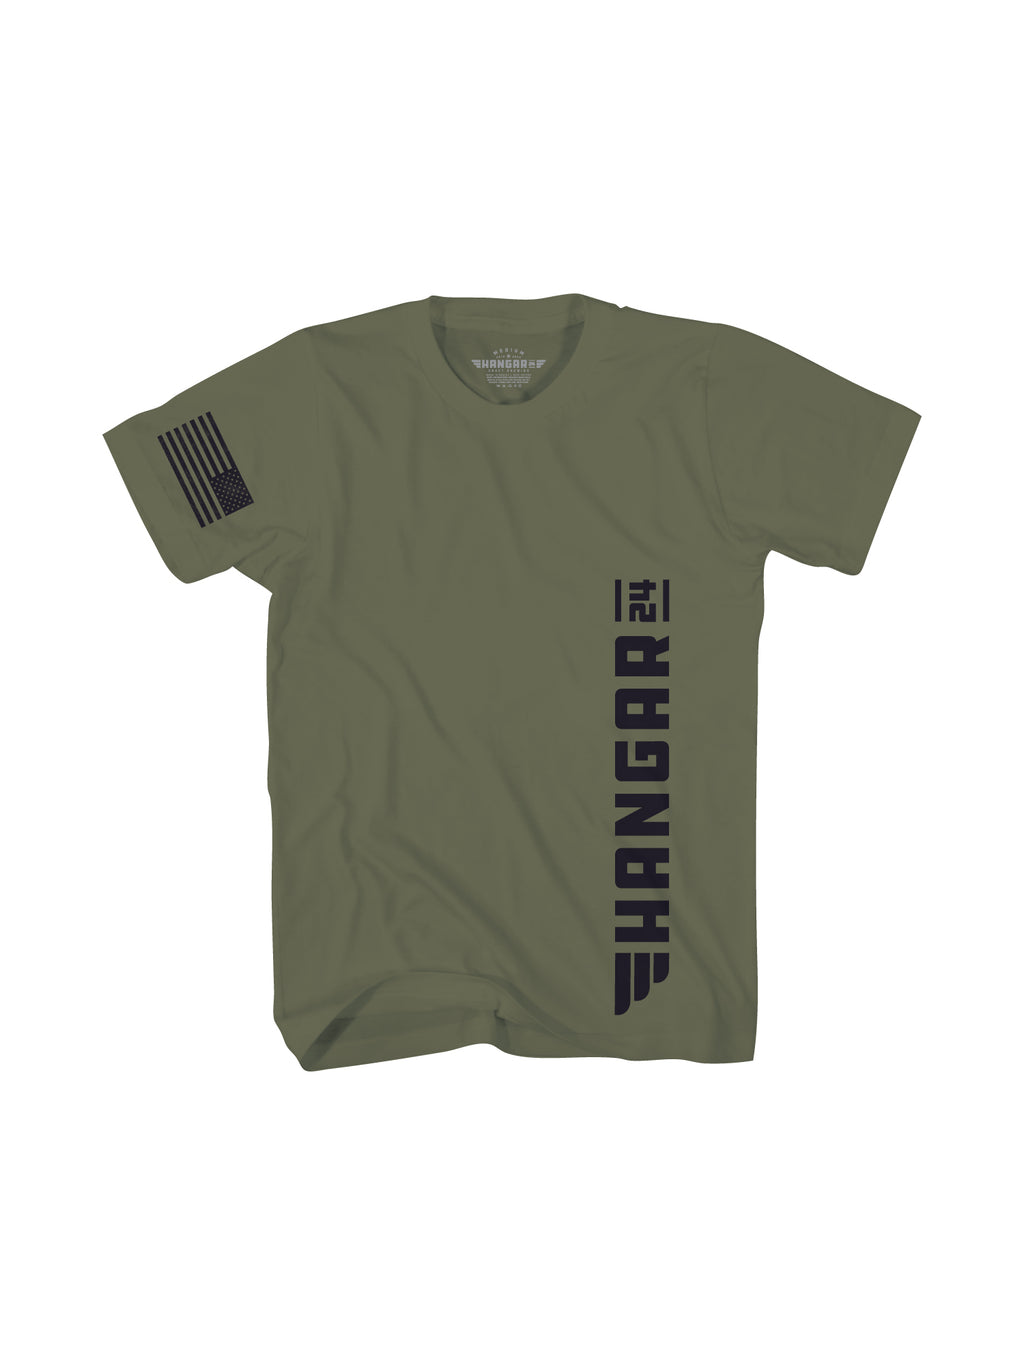 HANGAR 24 MENS TEE- MILITARY - Anderson Bros Design and Supply